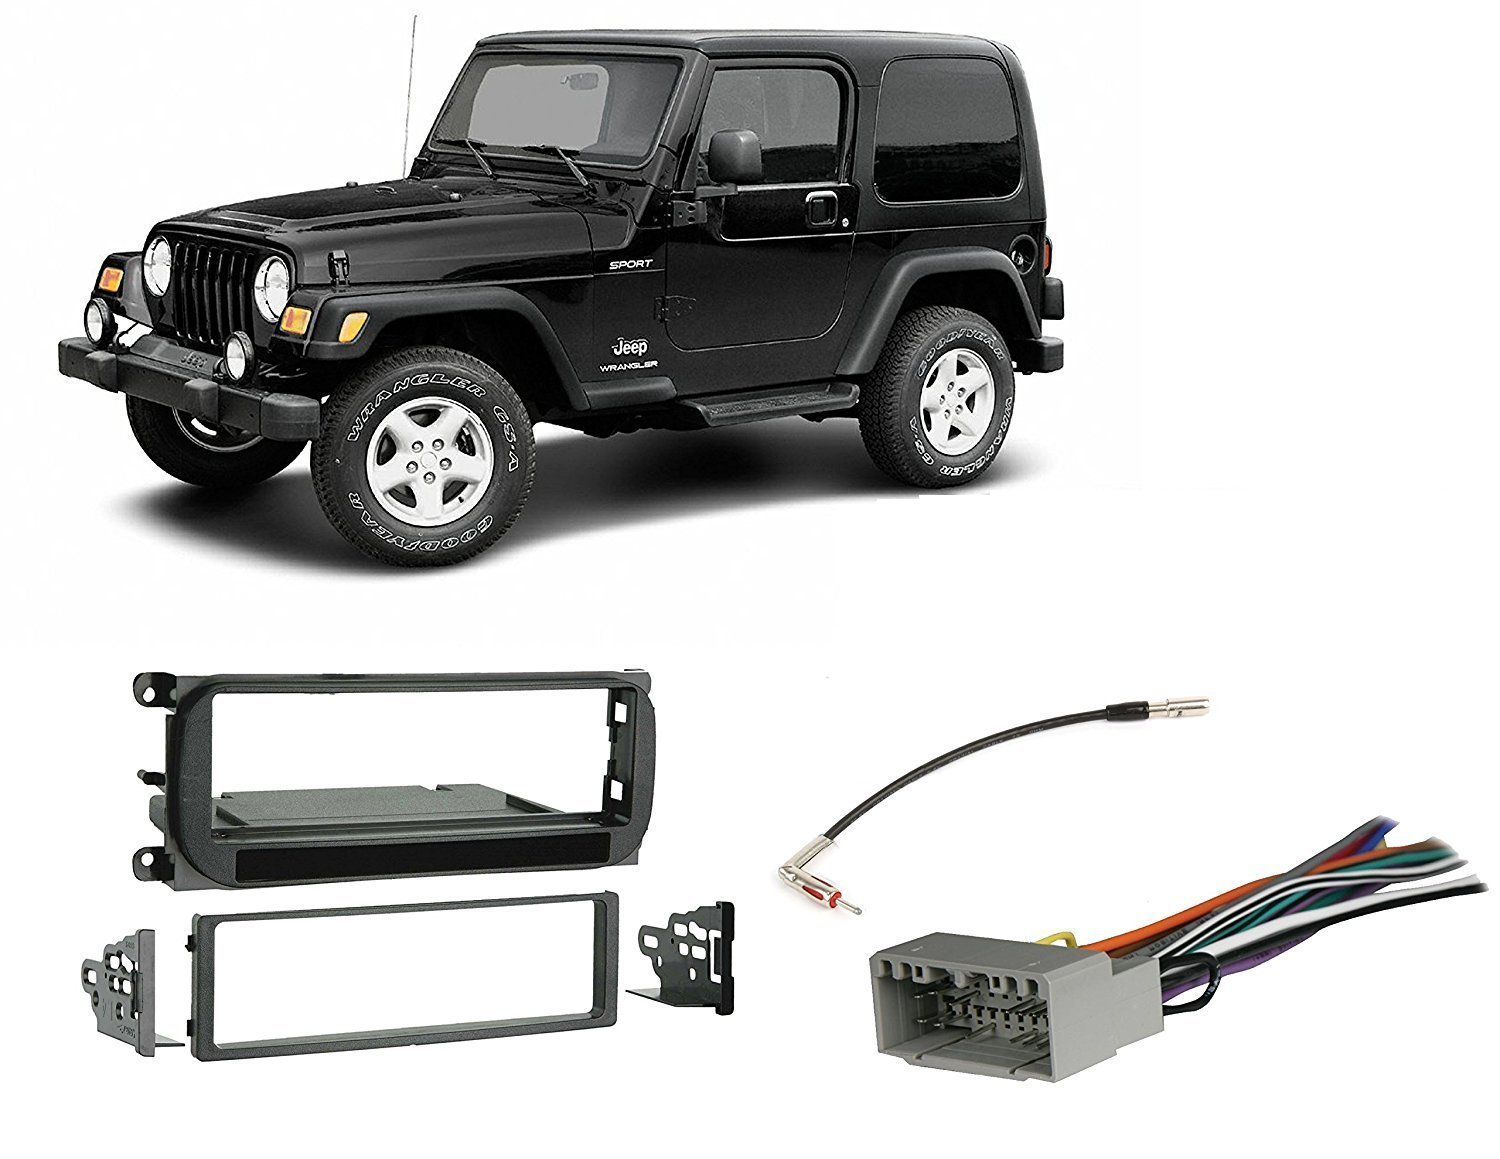 Jeep Grand Cherokee 02 04 Liberty 07 Wrangler Security Wiring 03 06 Radio Stereo Install Dash Kit Wire Harness Antenna Adapter Car Electronics